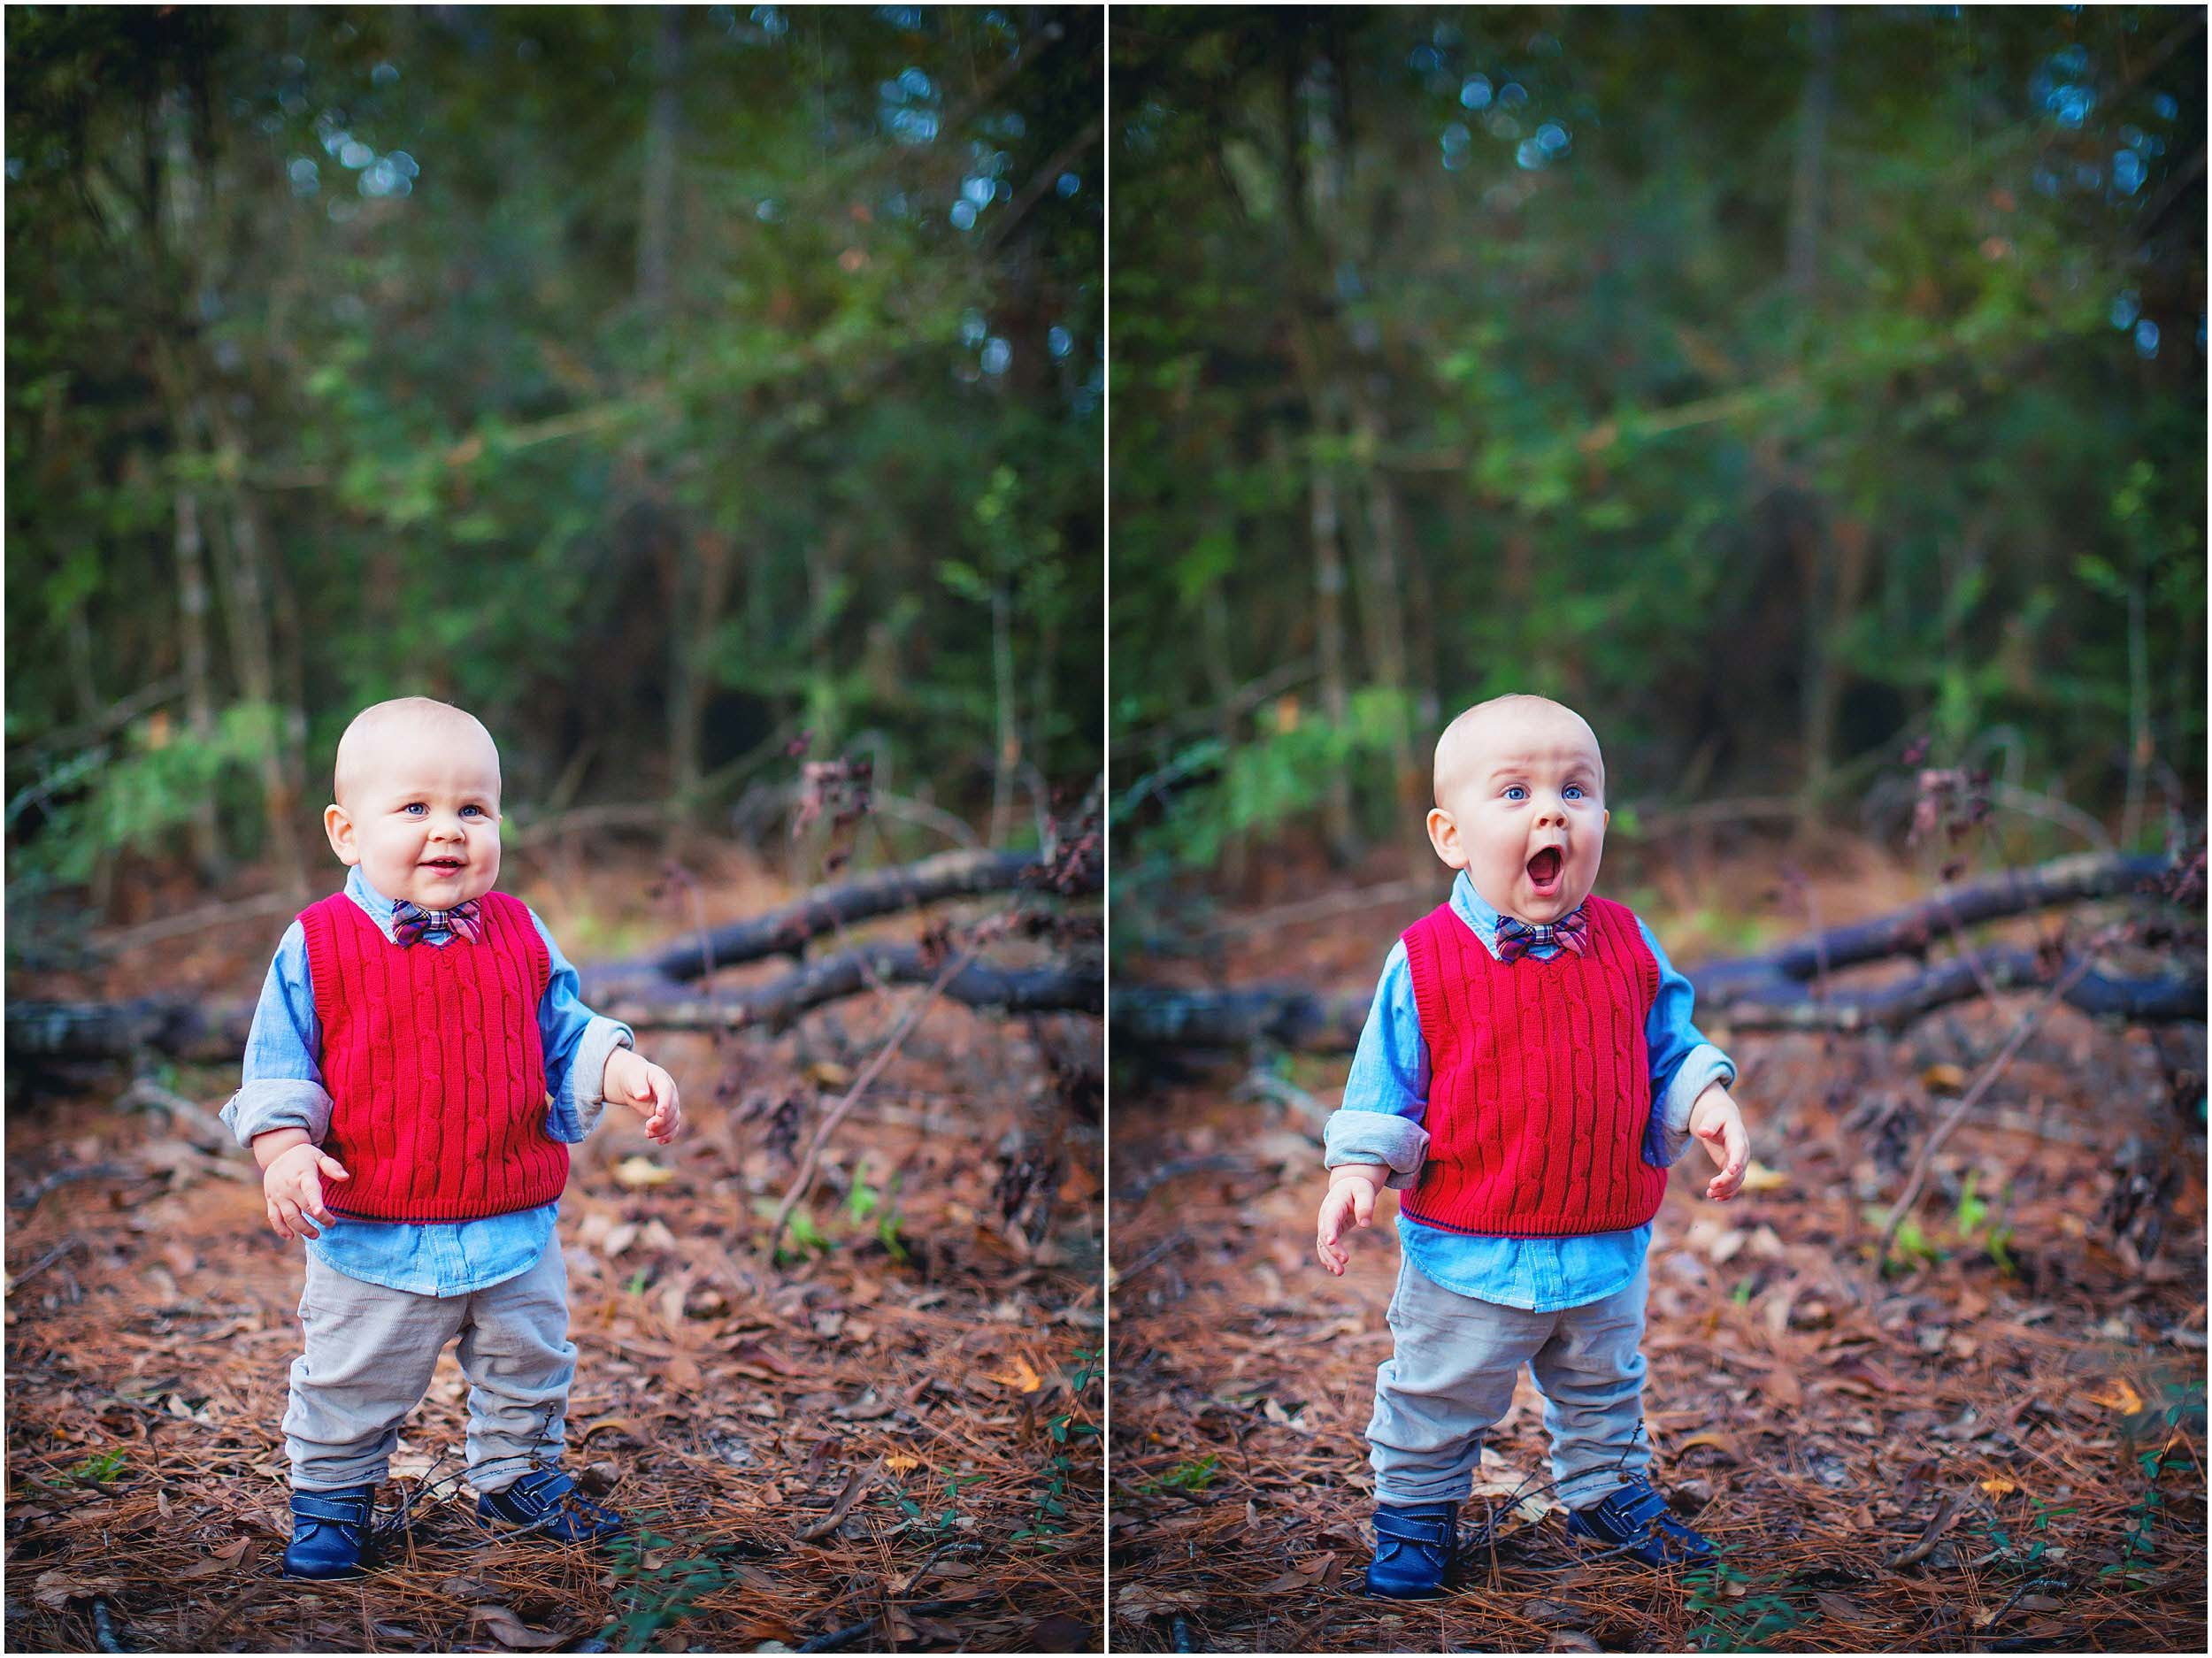 Outdoor portrait of adorable toddler in The Woodlands, Texas by spryART photography.